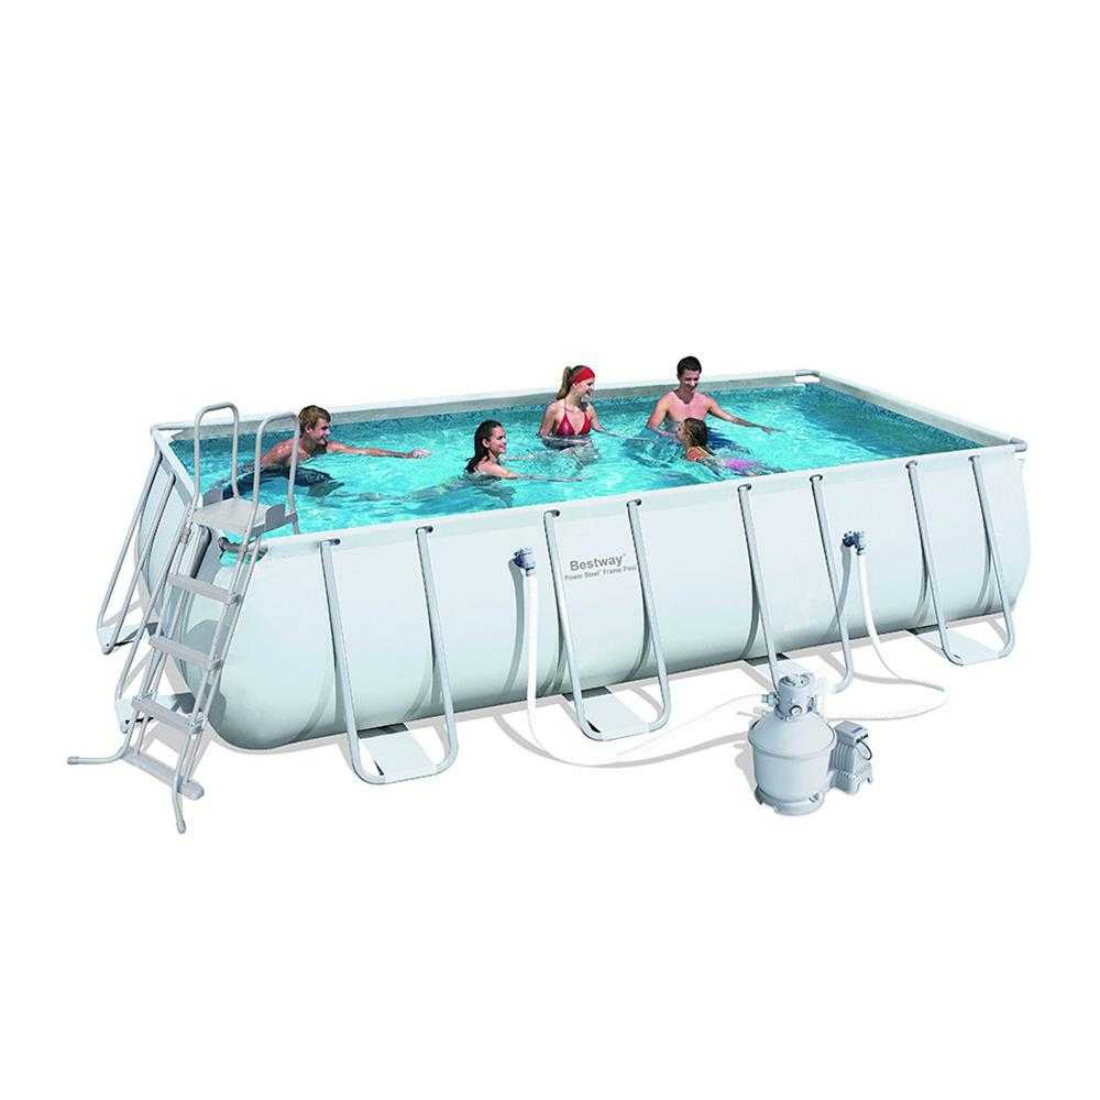 Bestway Steel Pro™ - Rectangle 5.5m x 2.7m Above Ground Pool - With Filter Kit